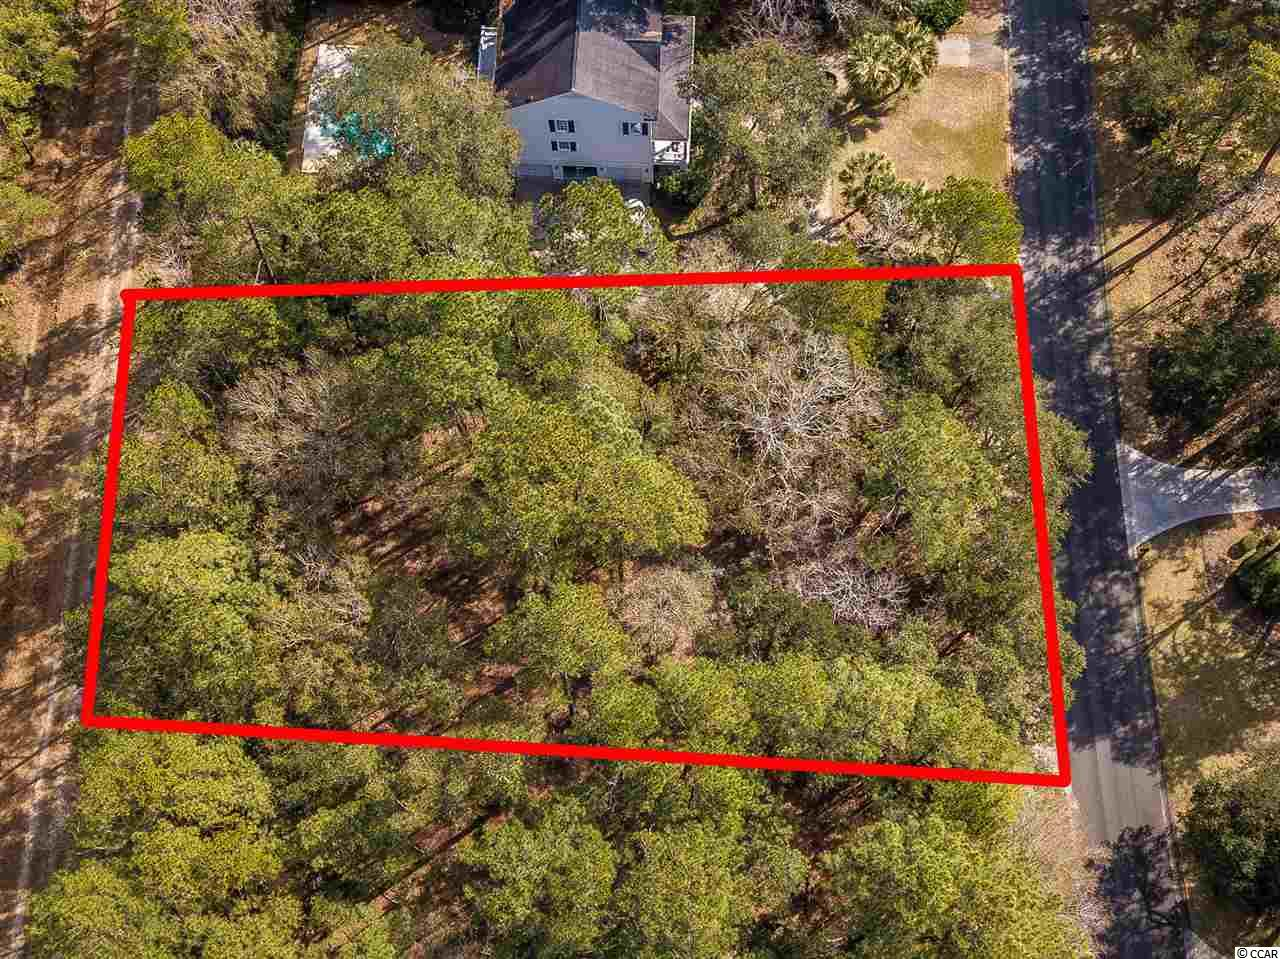 Multiple LIVE OAKS on a Beautiful wooded lot that backs up to the recently established Land Trust Conservation Easement. The lot has recently been cleared of underbrush to give you a good visual of the home site location. Great home site location. Close to all of the amenities in Debordieu, beach access (golf cart ride away) Tiki Bar, Golf Clubhouse, Tennis Courts, Fishing/crabbing sites throughout the entire development There are two outdoor pools one situated with beautiful views of the beach, many trails for convenient pathways for pedestrians, golf carts and bikers. Great location for a seaside village homesite. The lot is in X Flood Zone and is HIGH AND DRY LOT DIMENSIONS 143x229x223x121